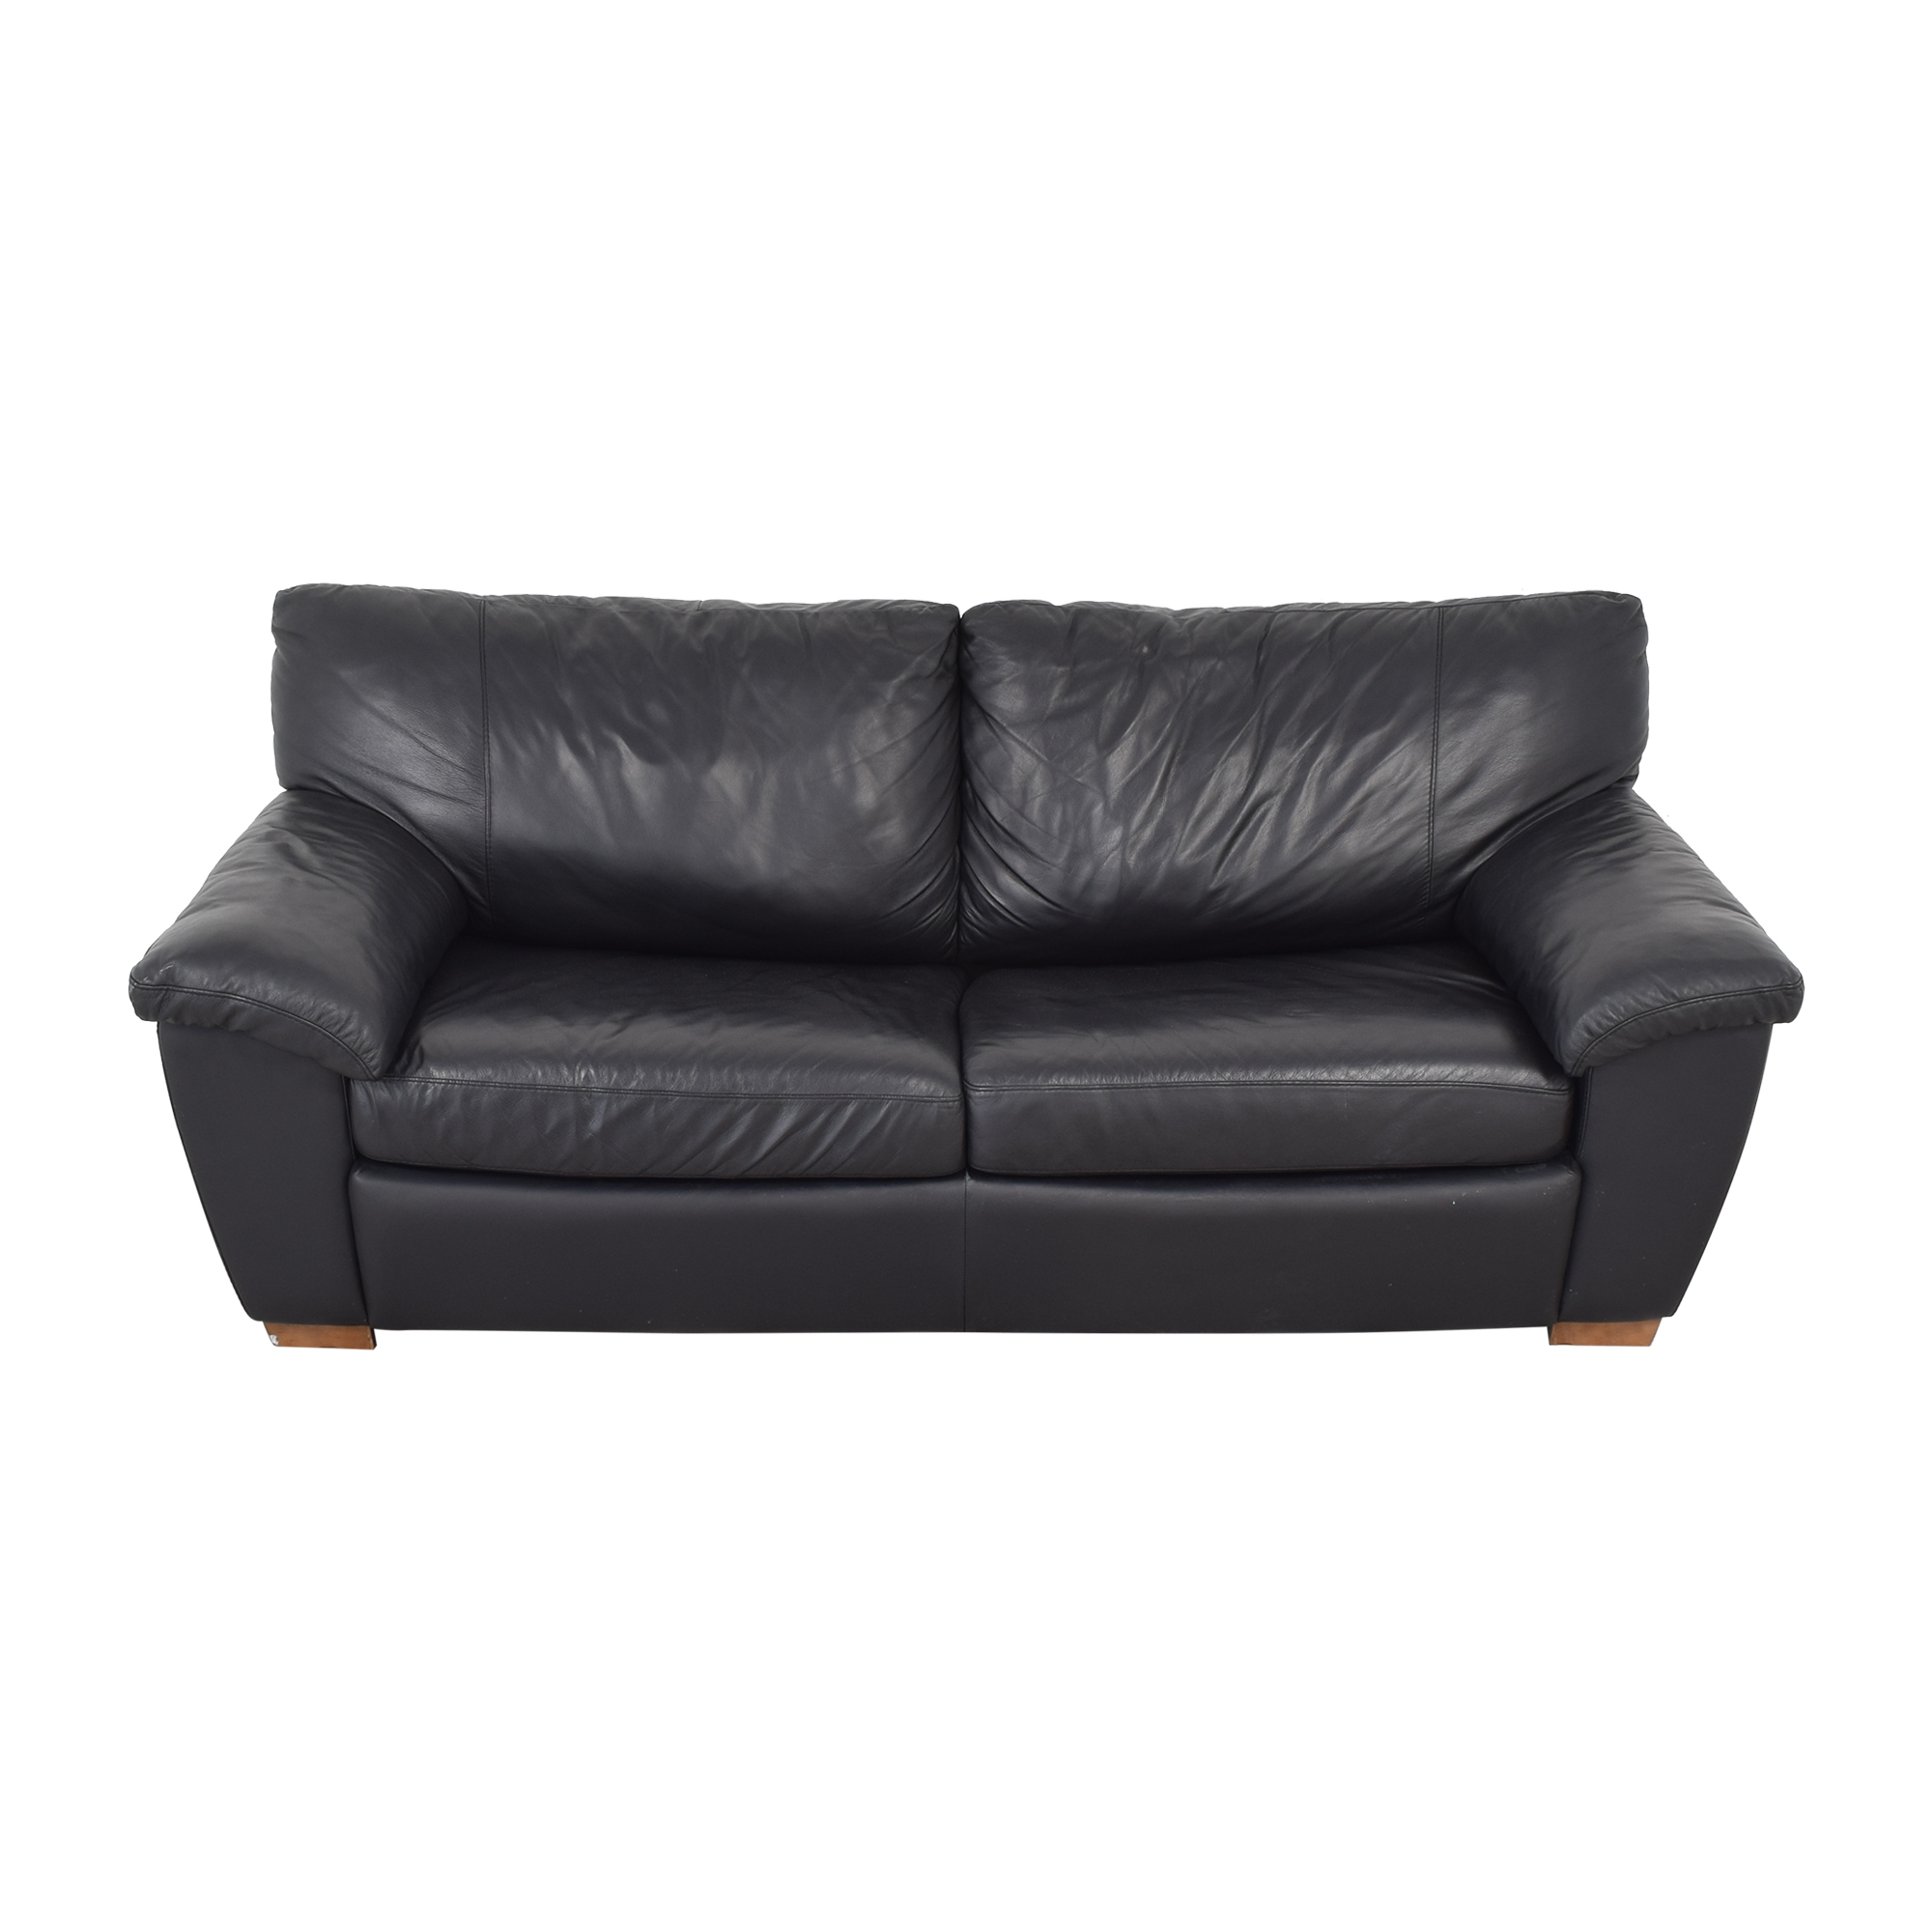 Ikea Vreta Pull Out Sofa Bed